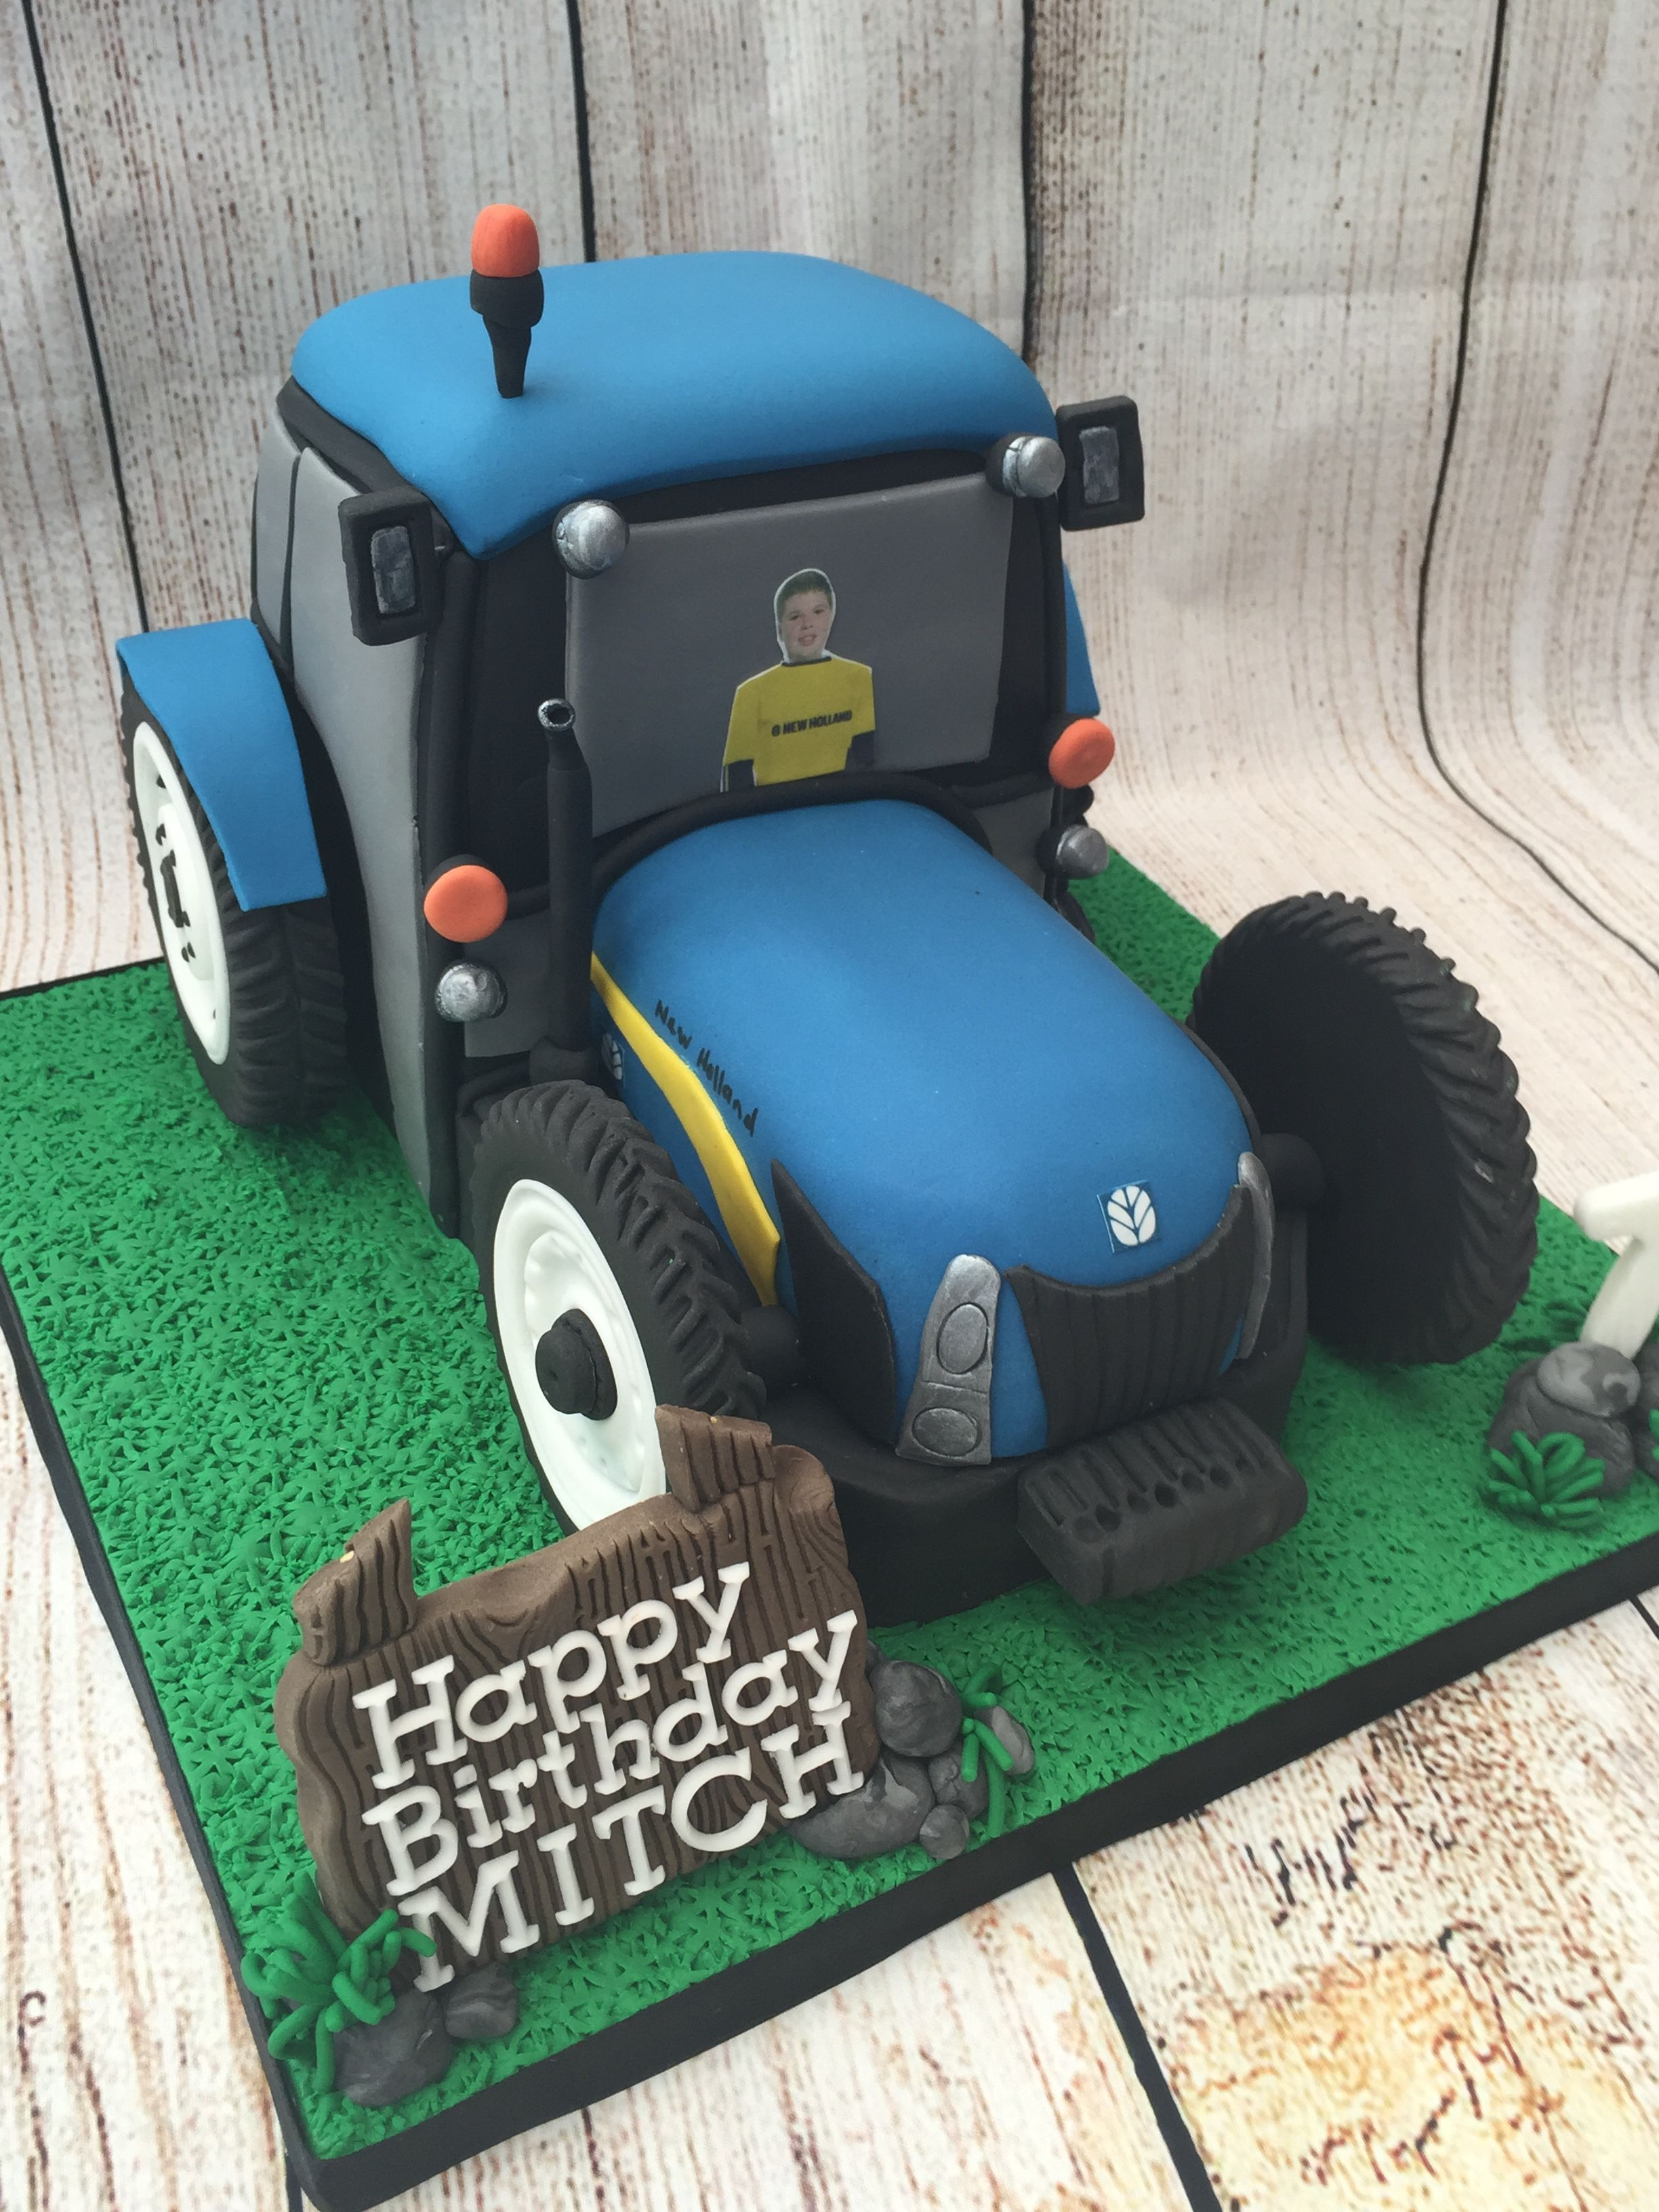 New Holland Tractor Birthday Cake Tractor Birthday Cakes Tractor Birthday Farm Birthday Cakes